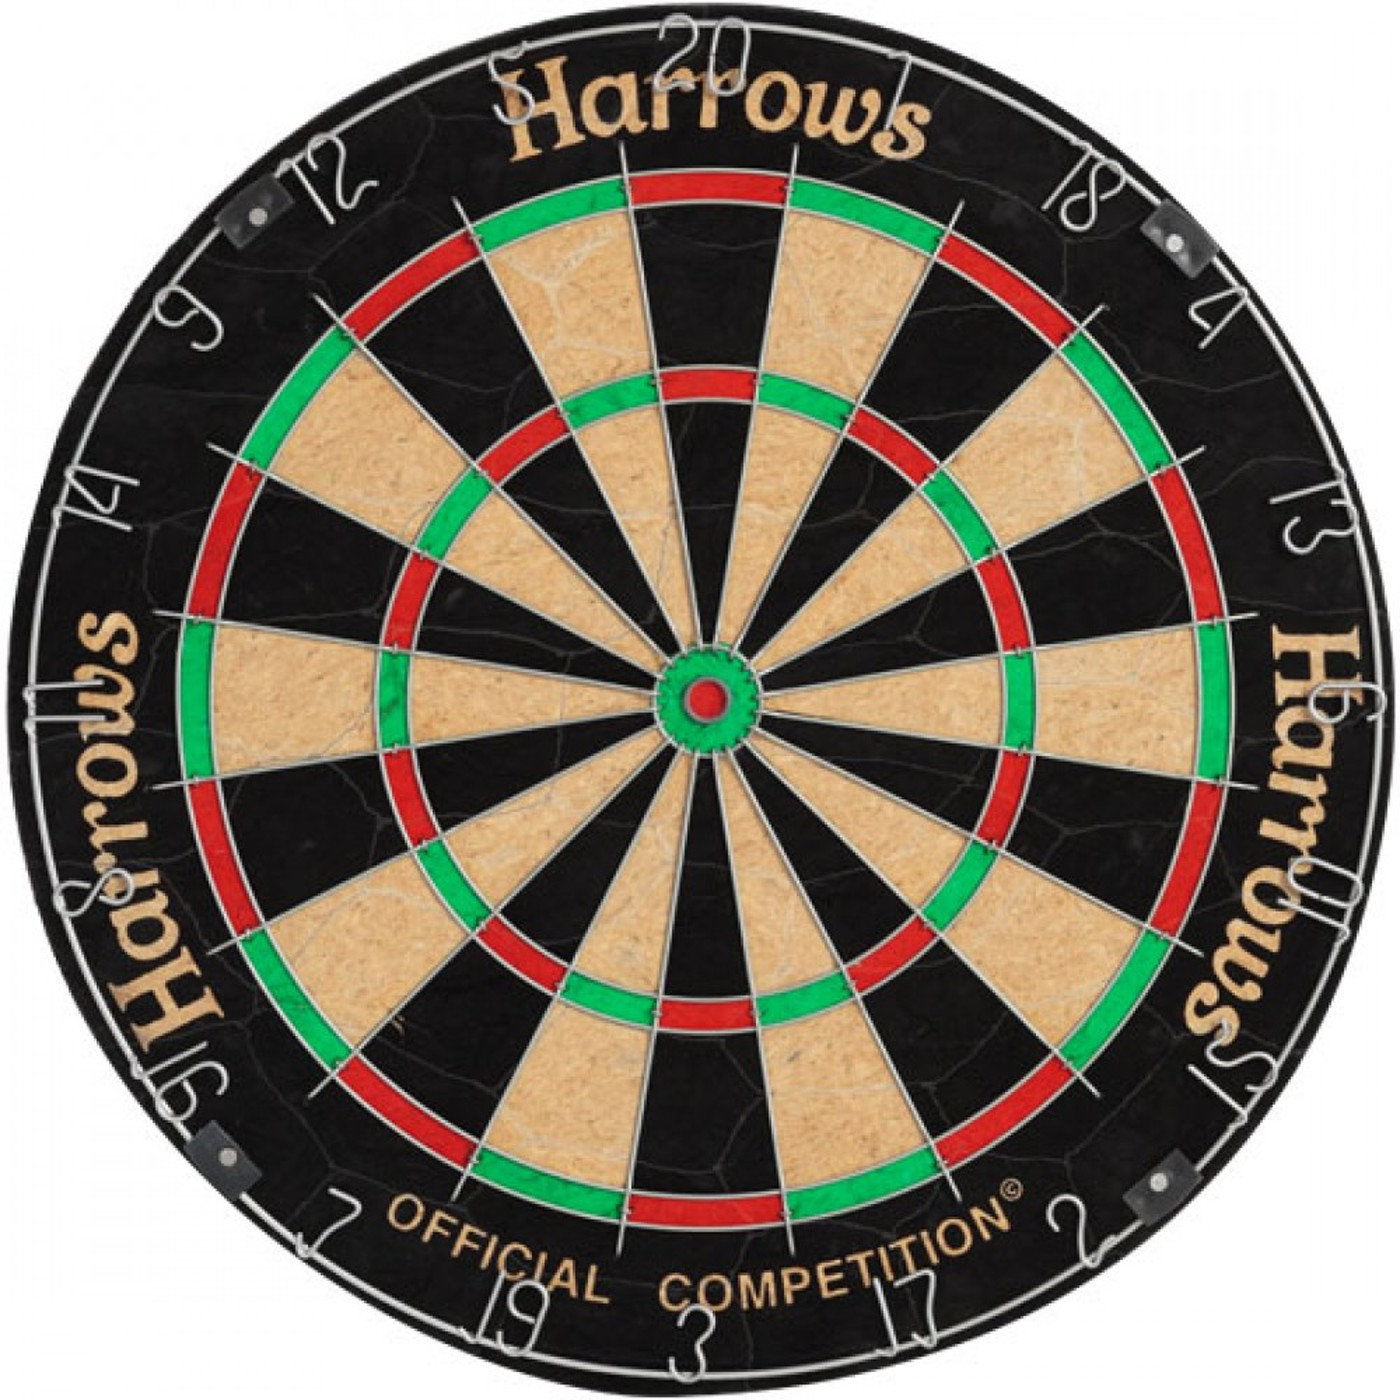 HARROWS Dartboard Official Competion